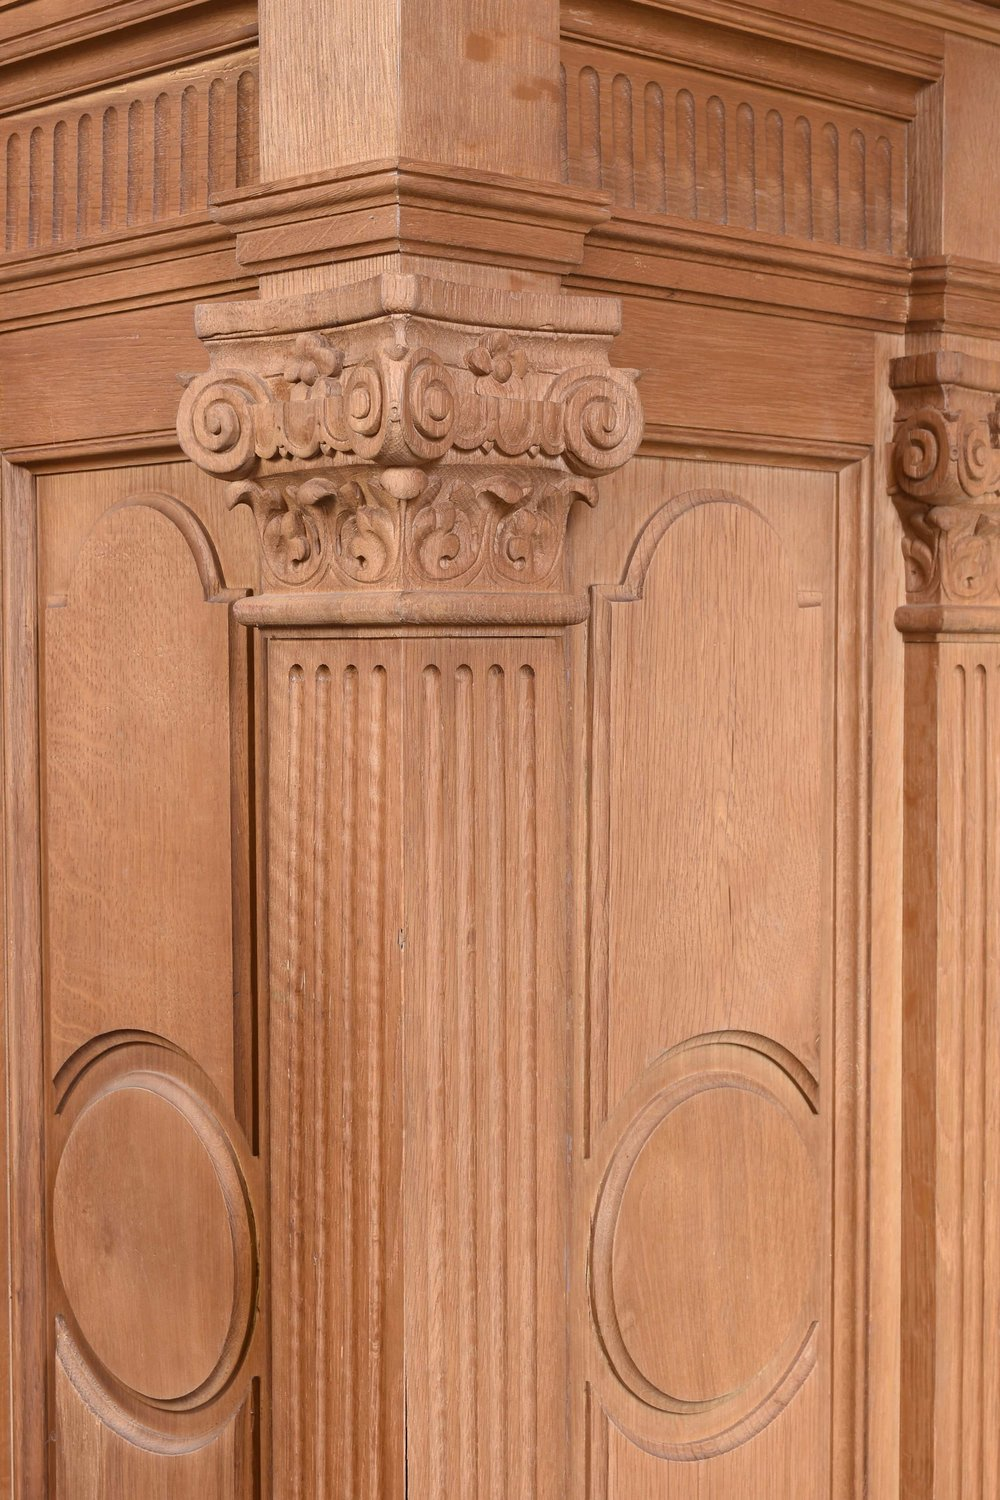 46991 quartersawn pedestal capital.jpg